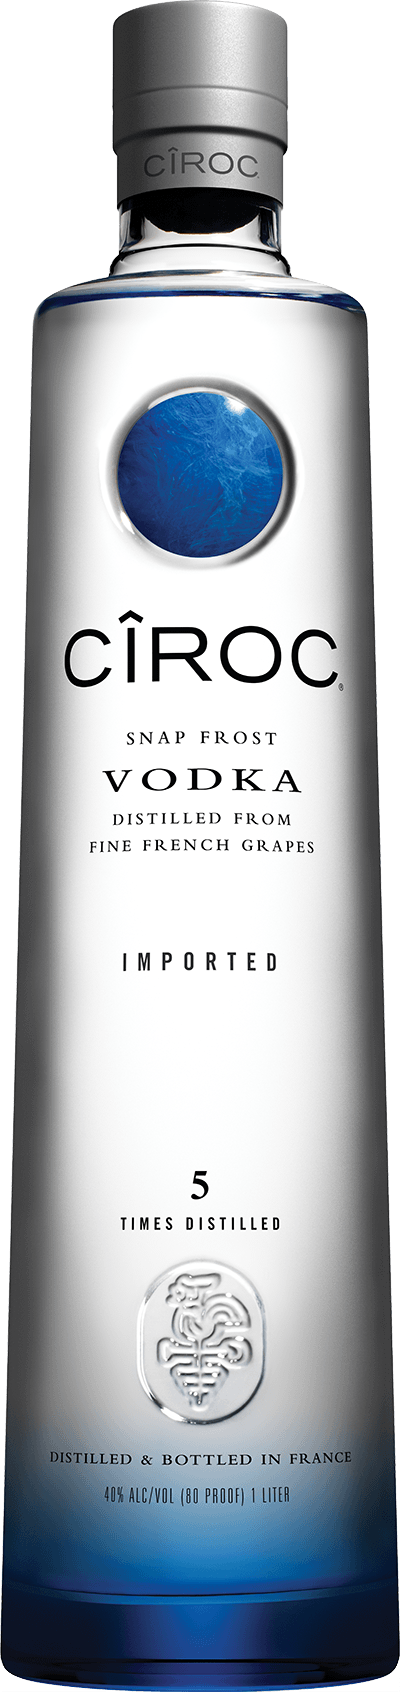 Cîroc® Vodka product shot